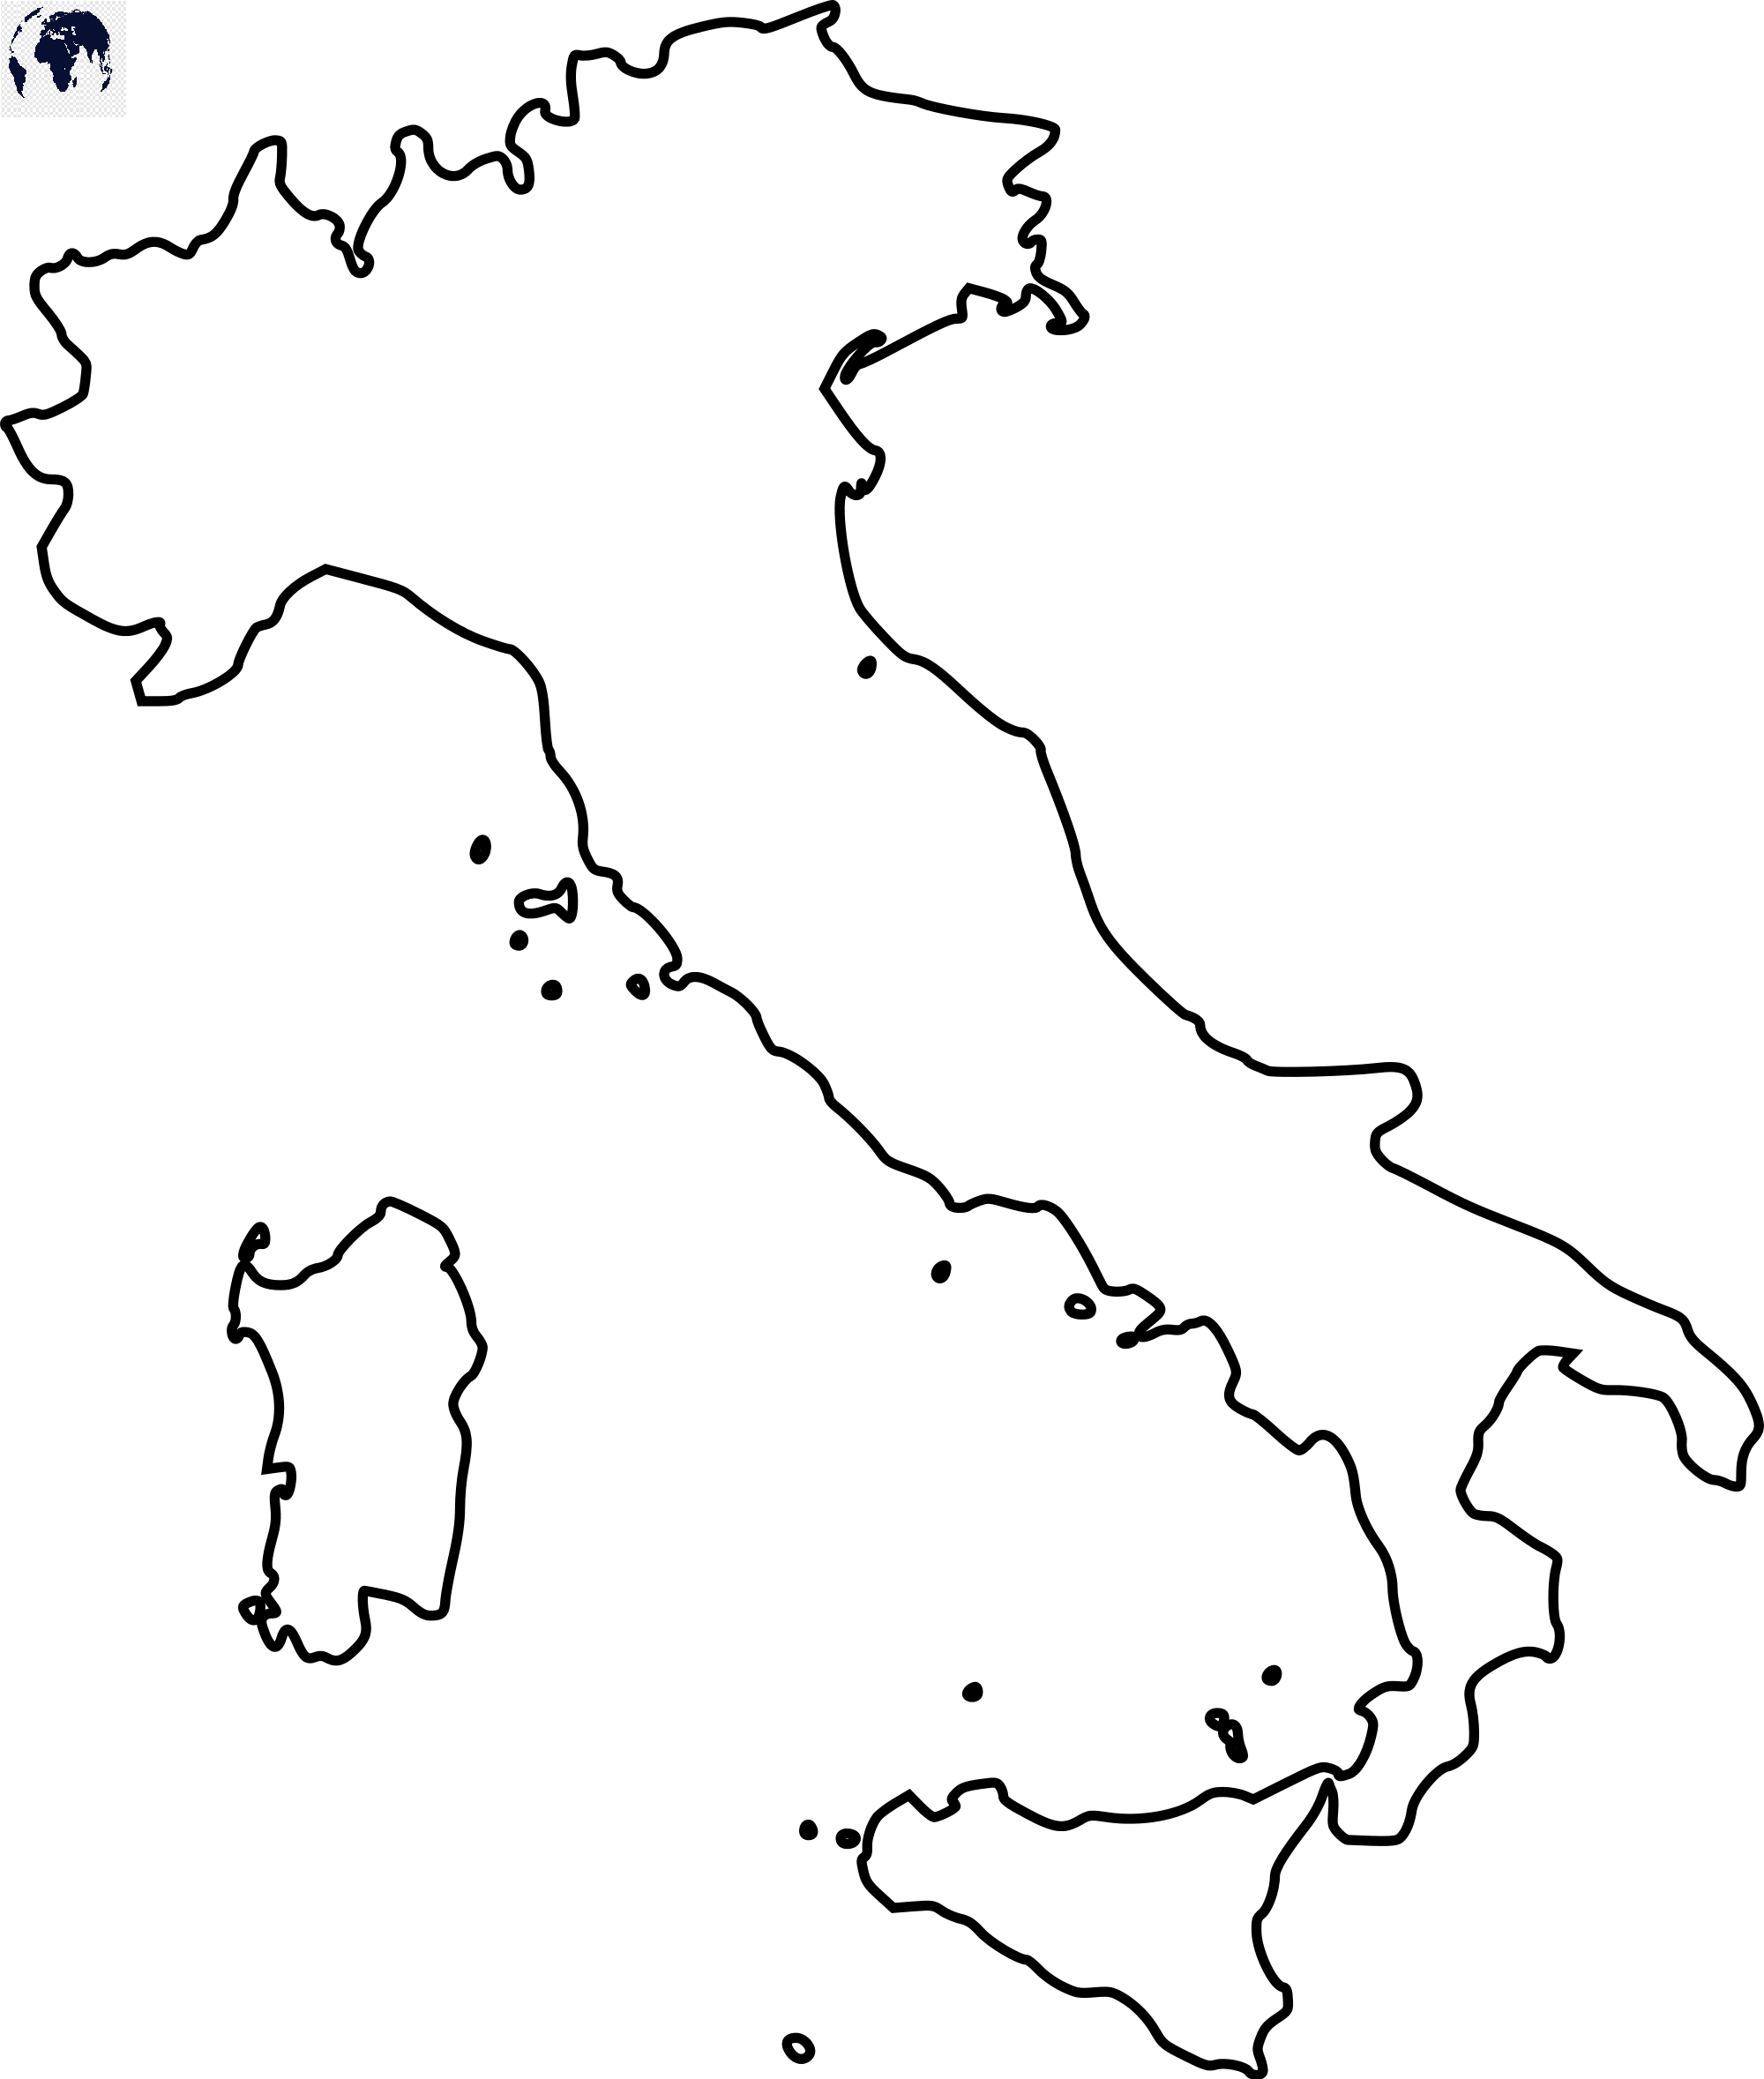 Blank Map of Italy - Outline